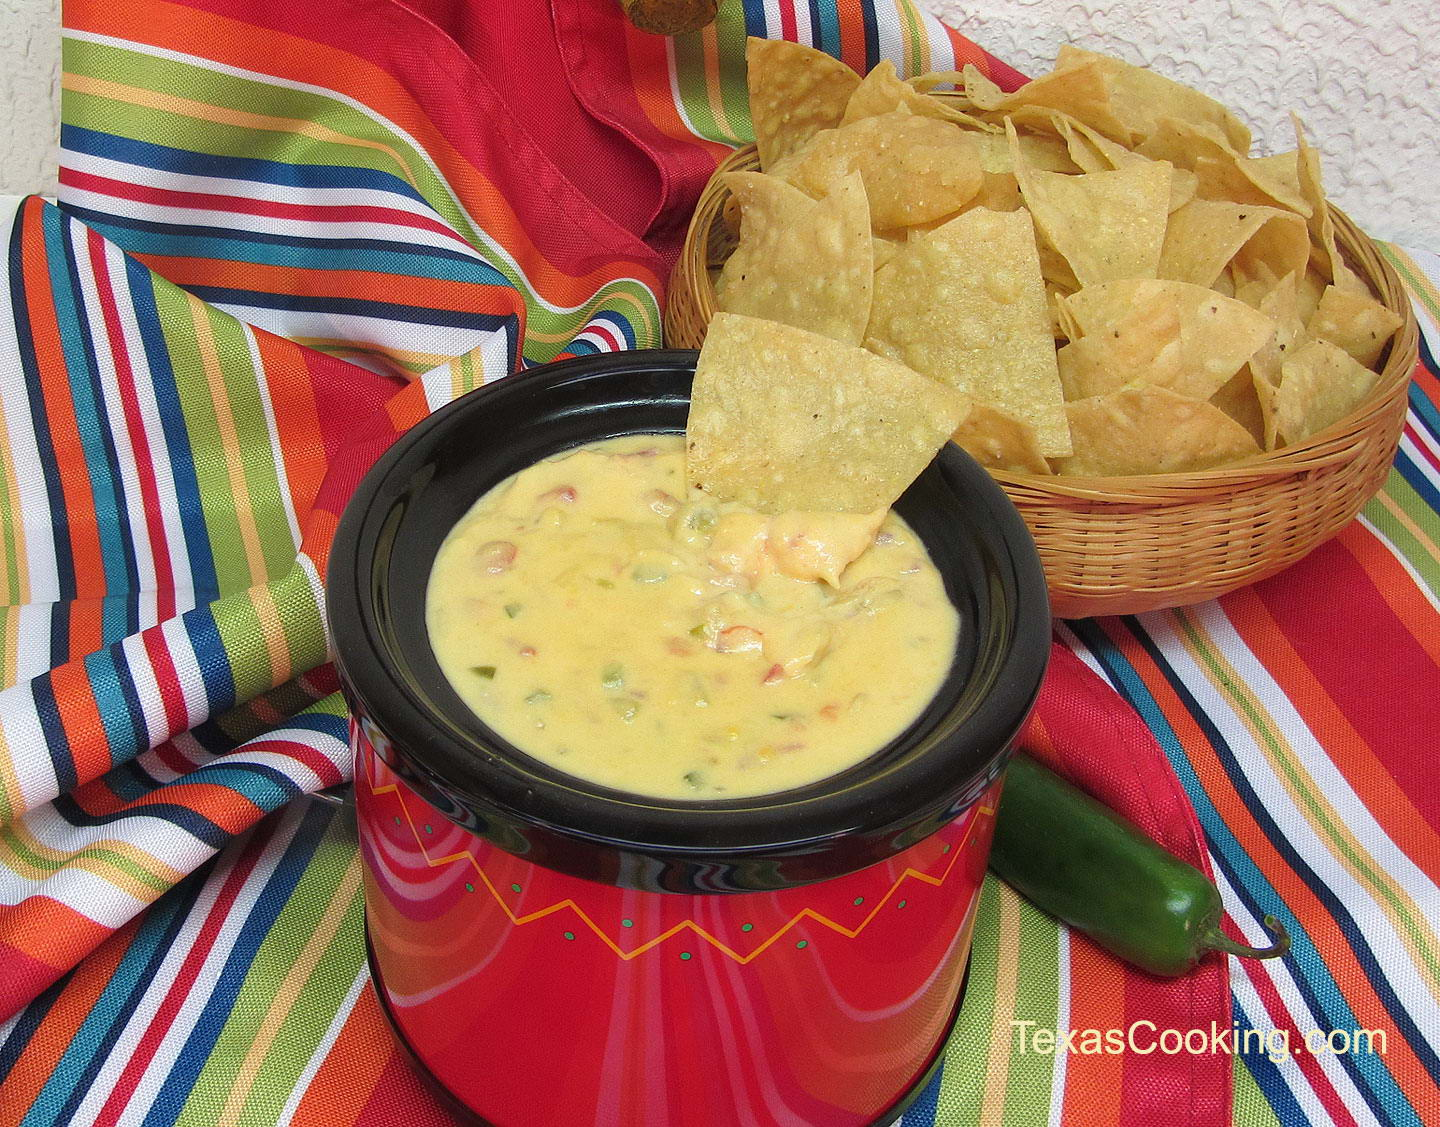 Recipe of the Week: Chile con Queso